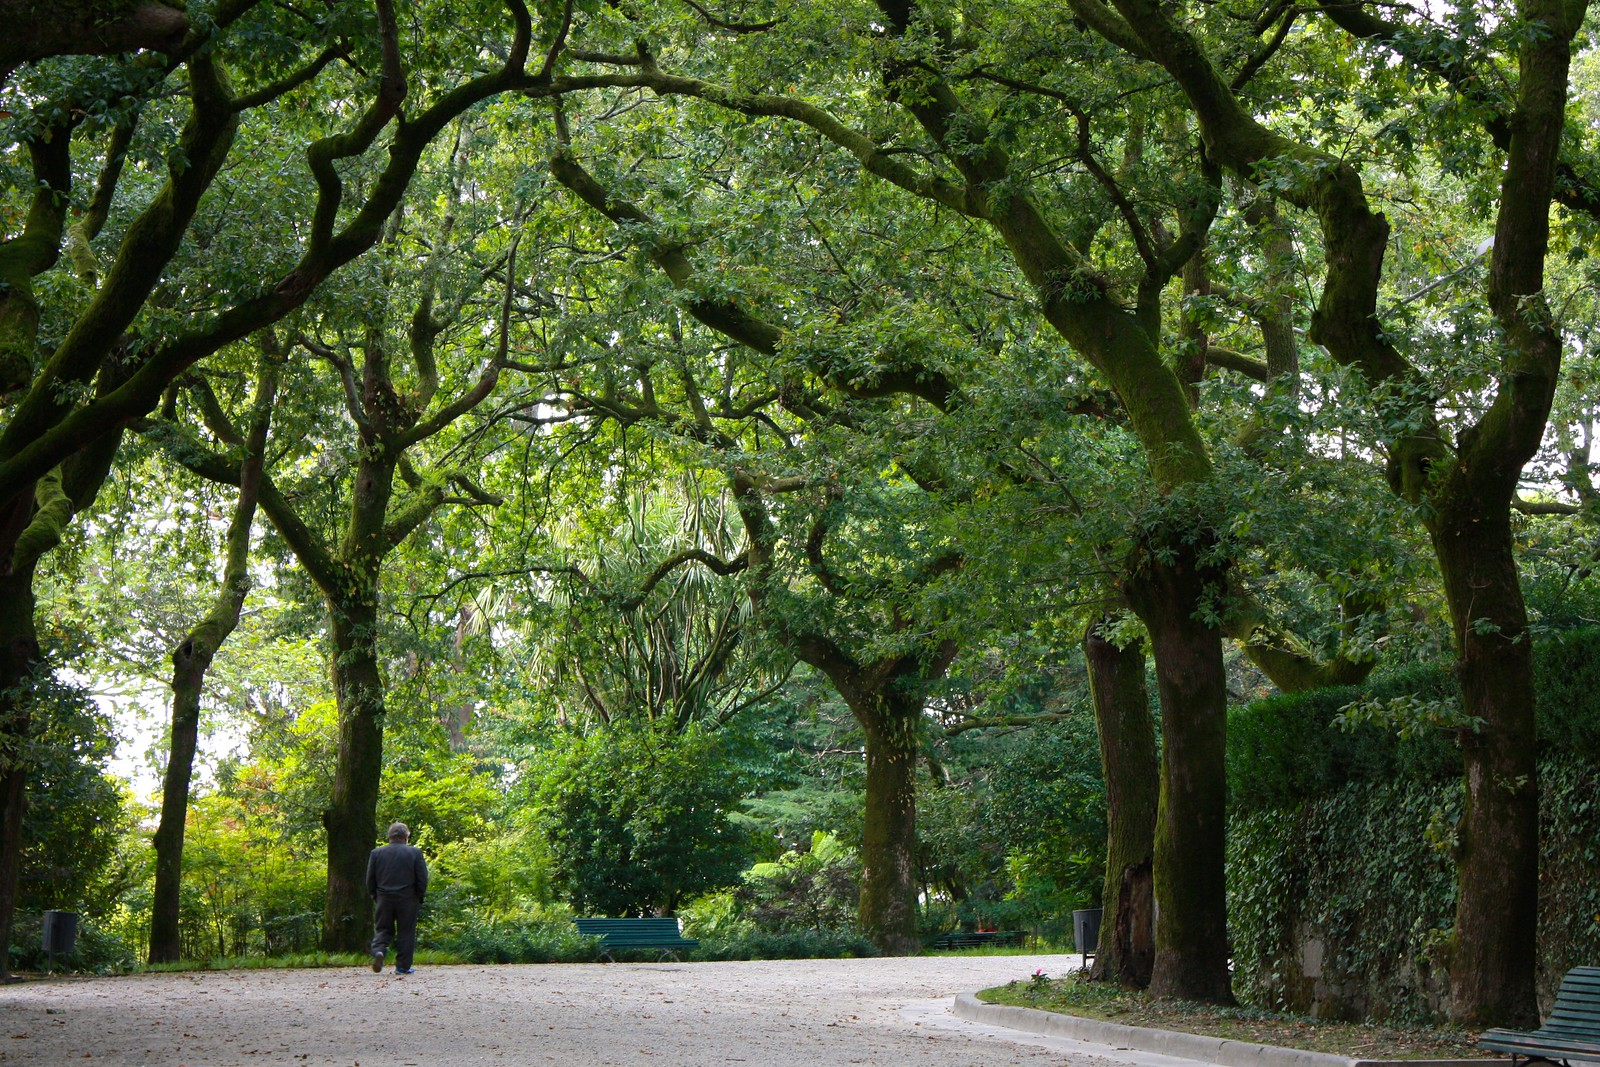 Tree-lined path in the Parque da Alameda, Santiago de Compostela, Spain